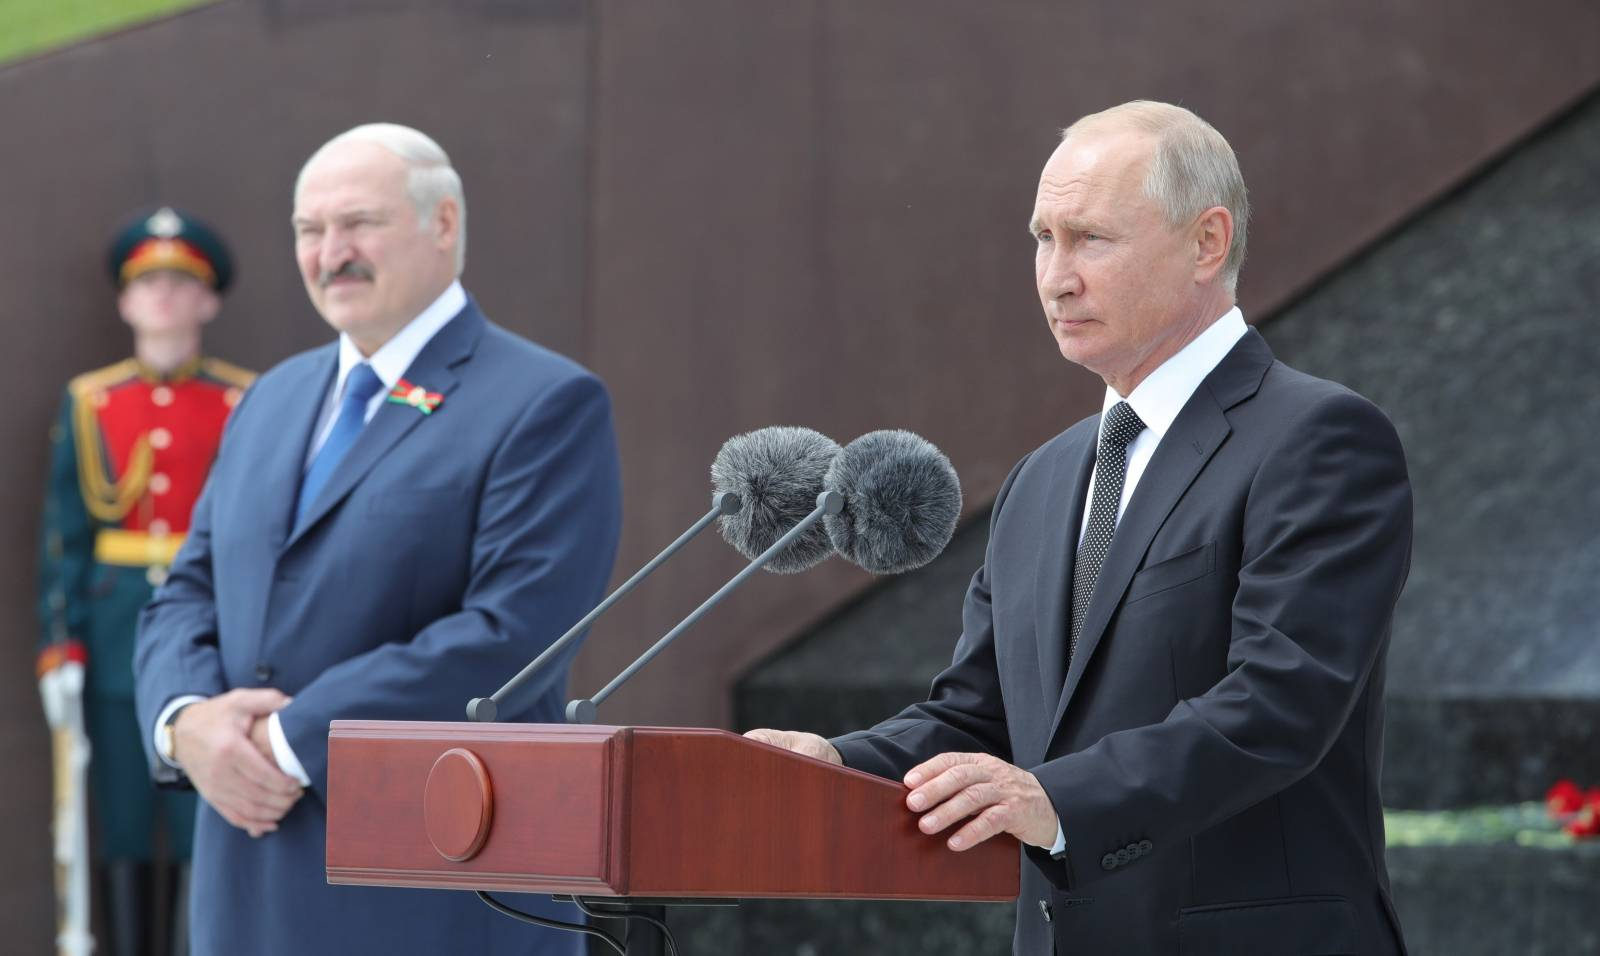 Russian President Putin and his Belarusian counterpart Lukashenko attend a ceremony unveiling the Memorial to the Soviet Soldier near Rzhev in Tver Region